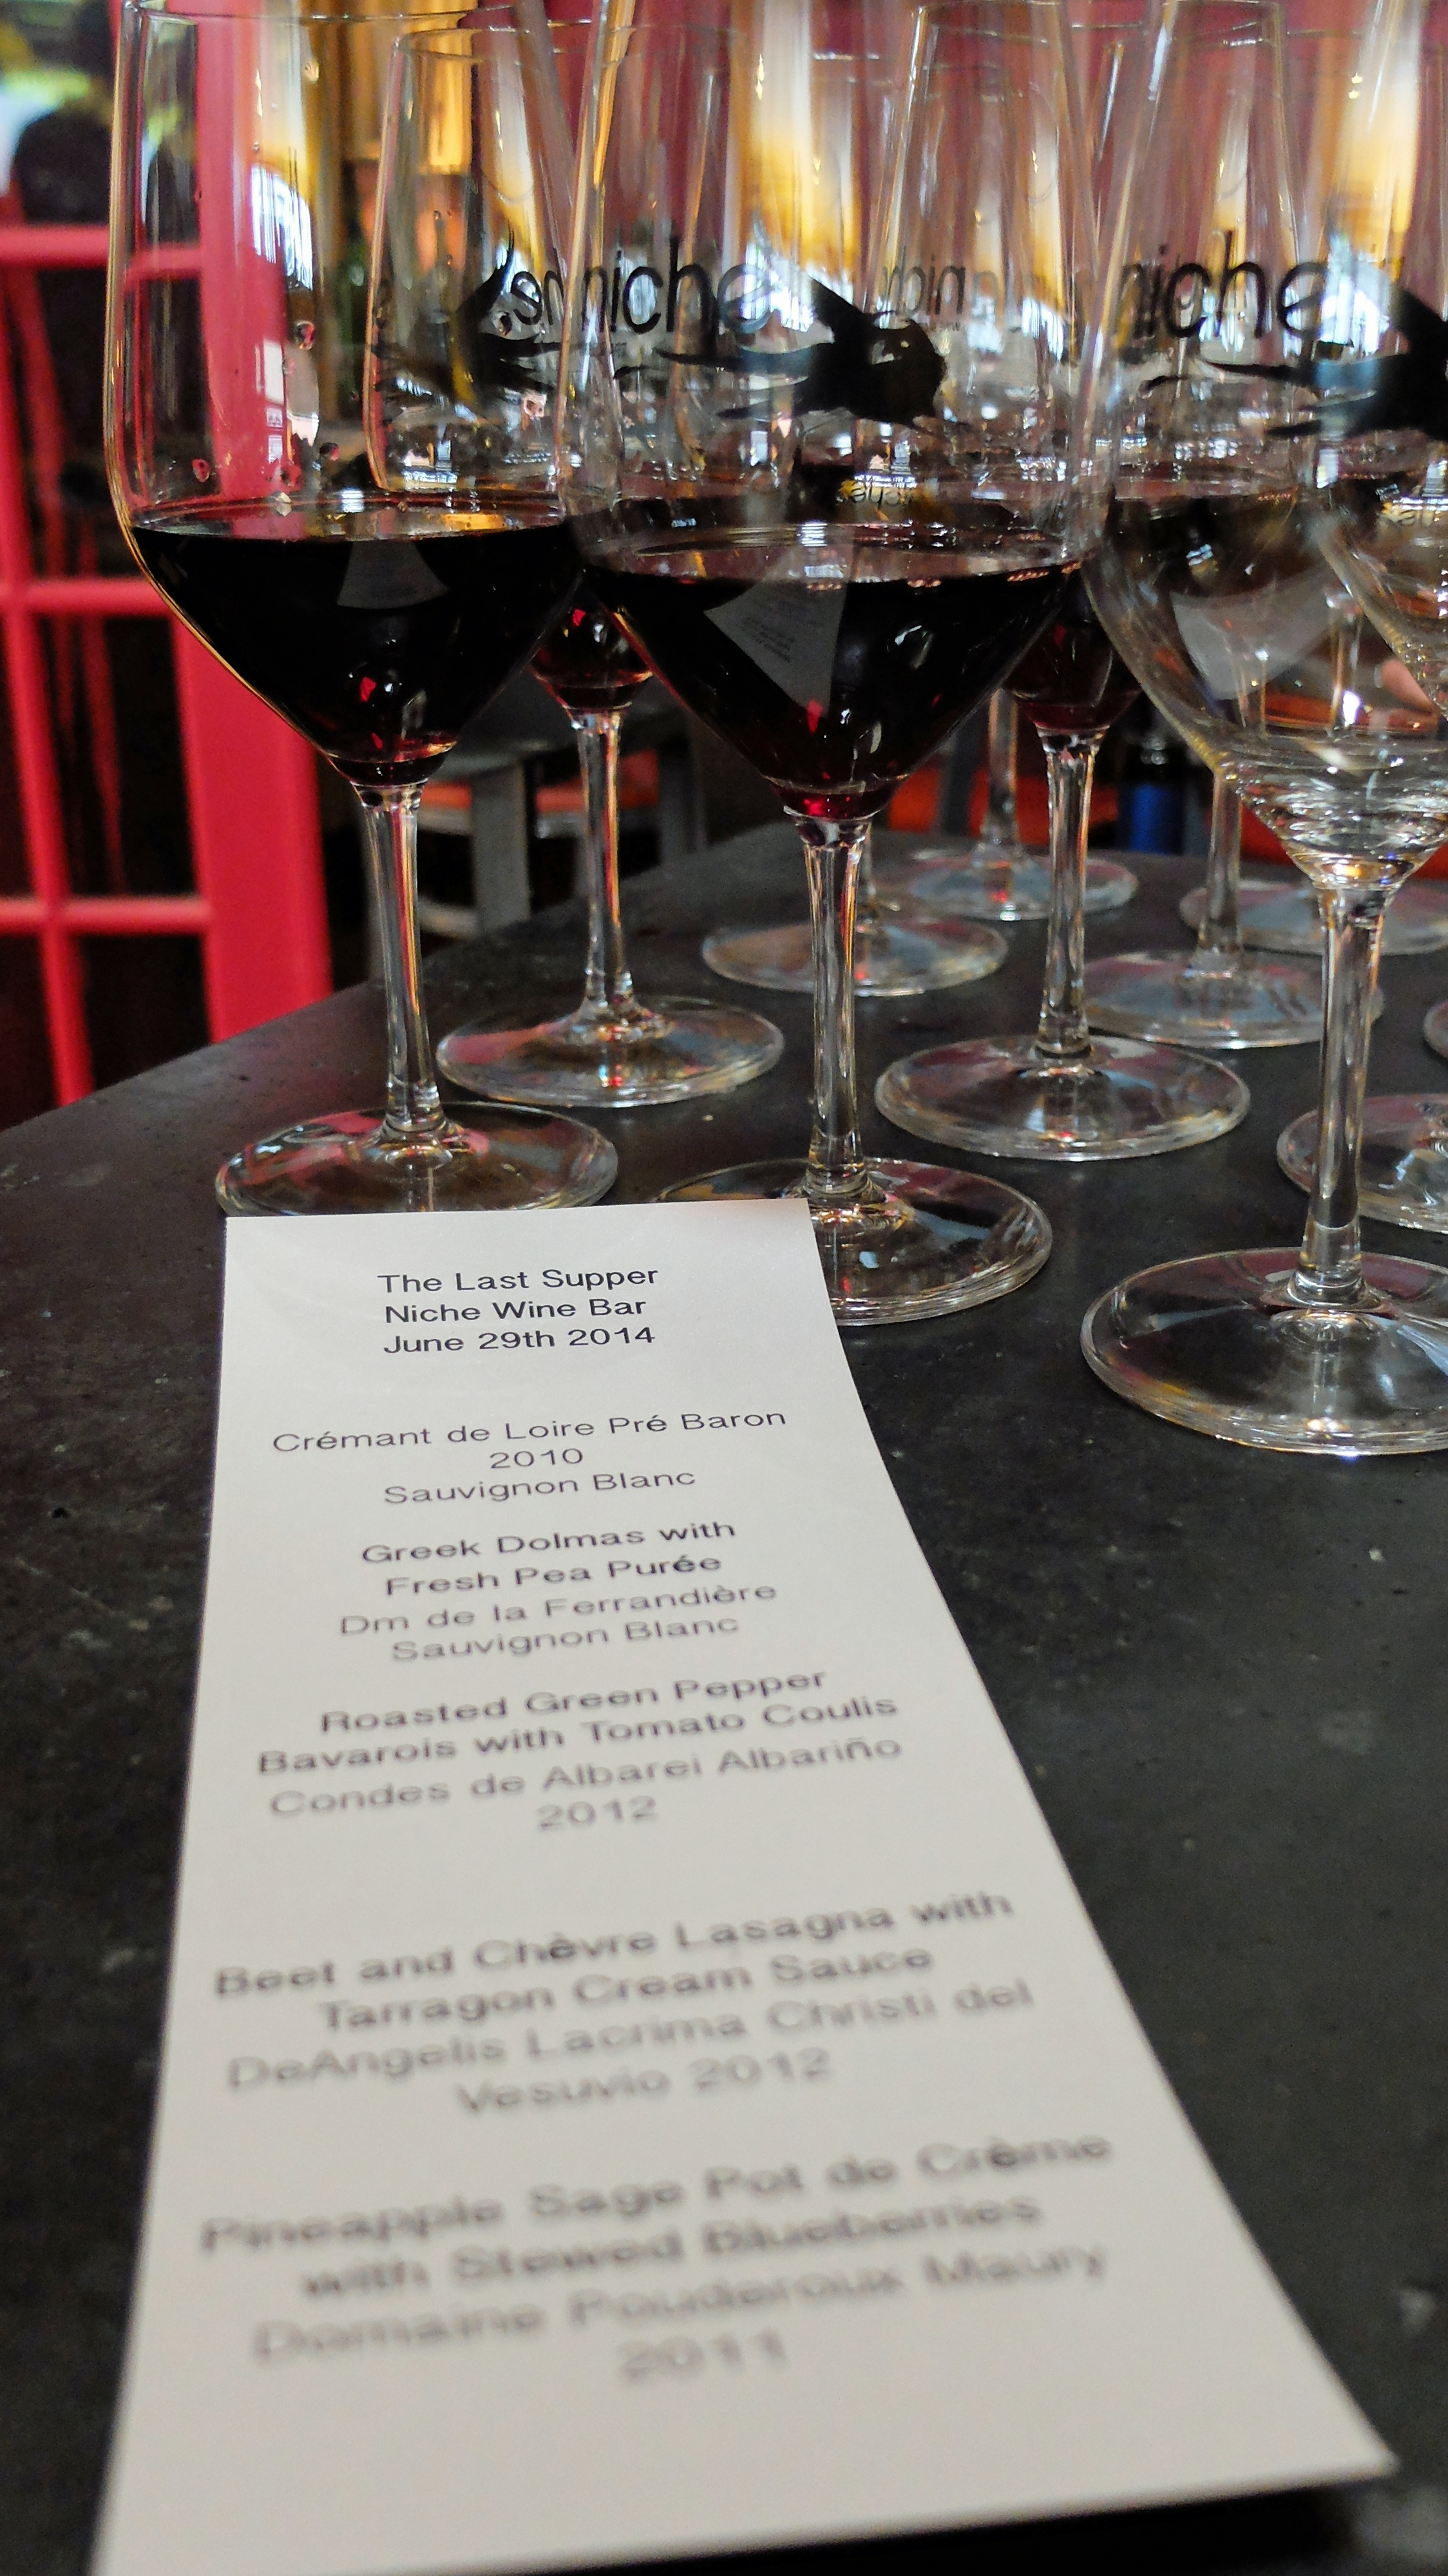 Niche - Wine with Event Courses - Boulanger 2014.jpg